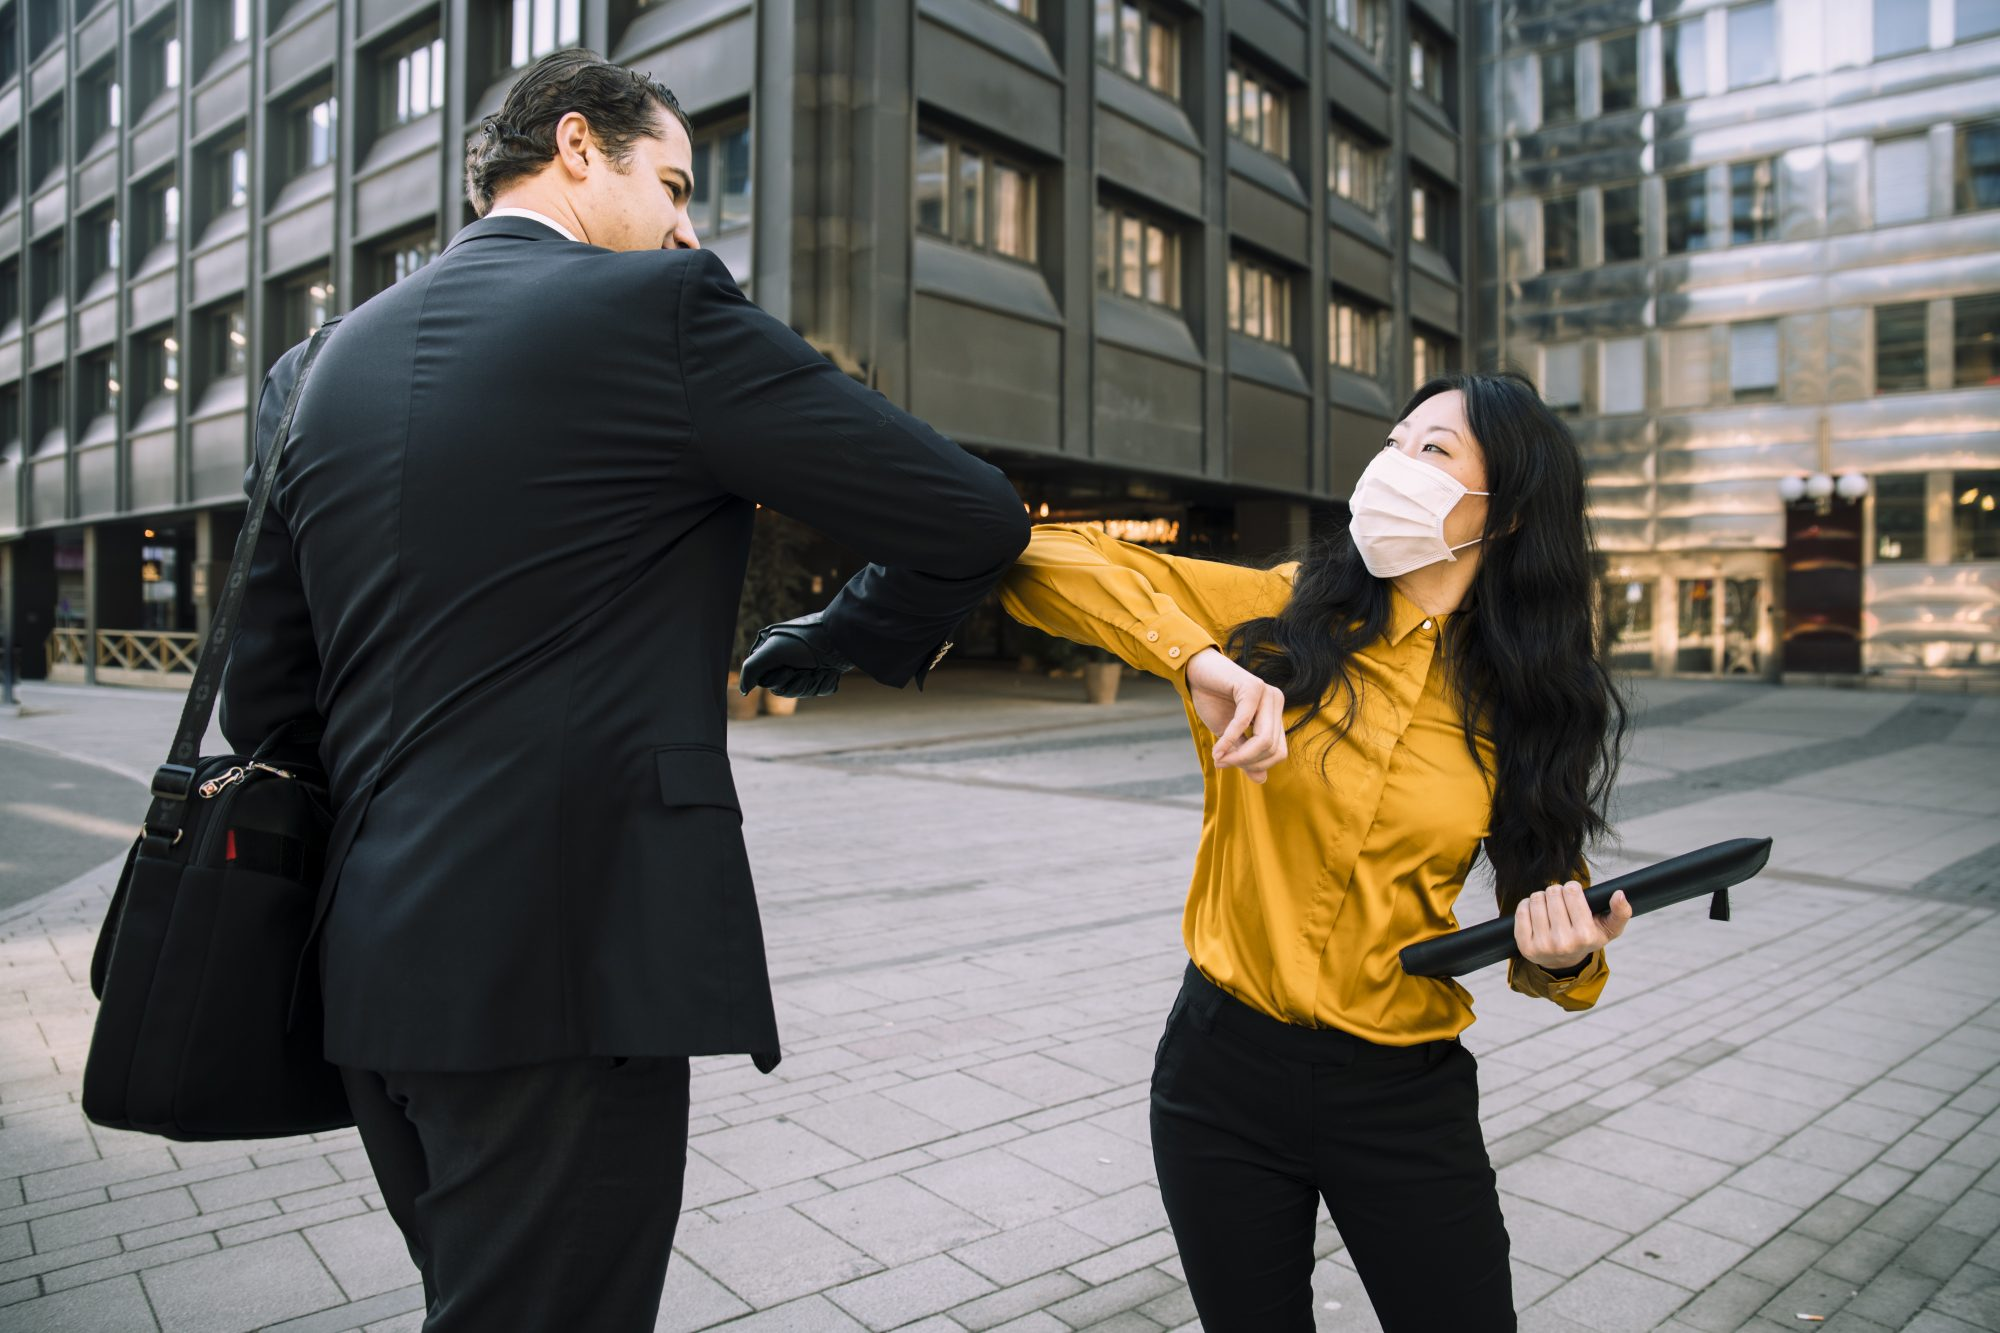 two people bumping elbows as greeting